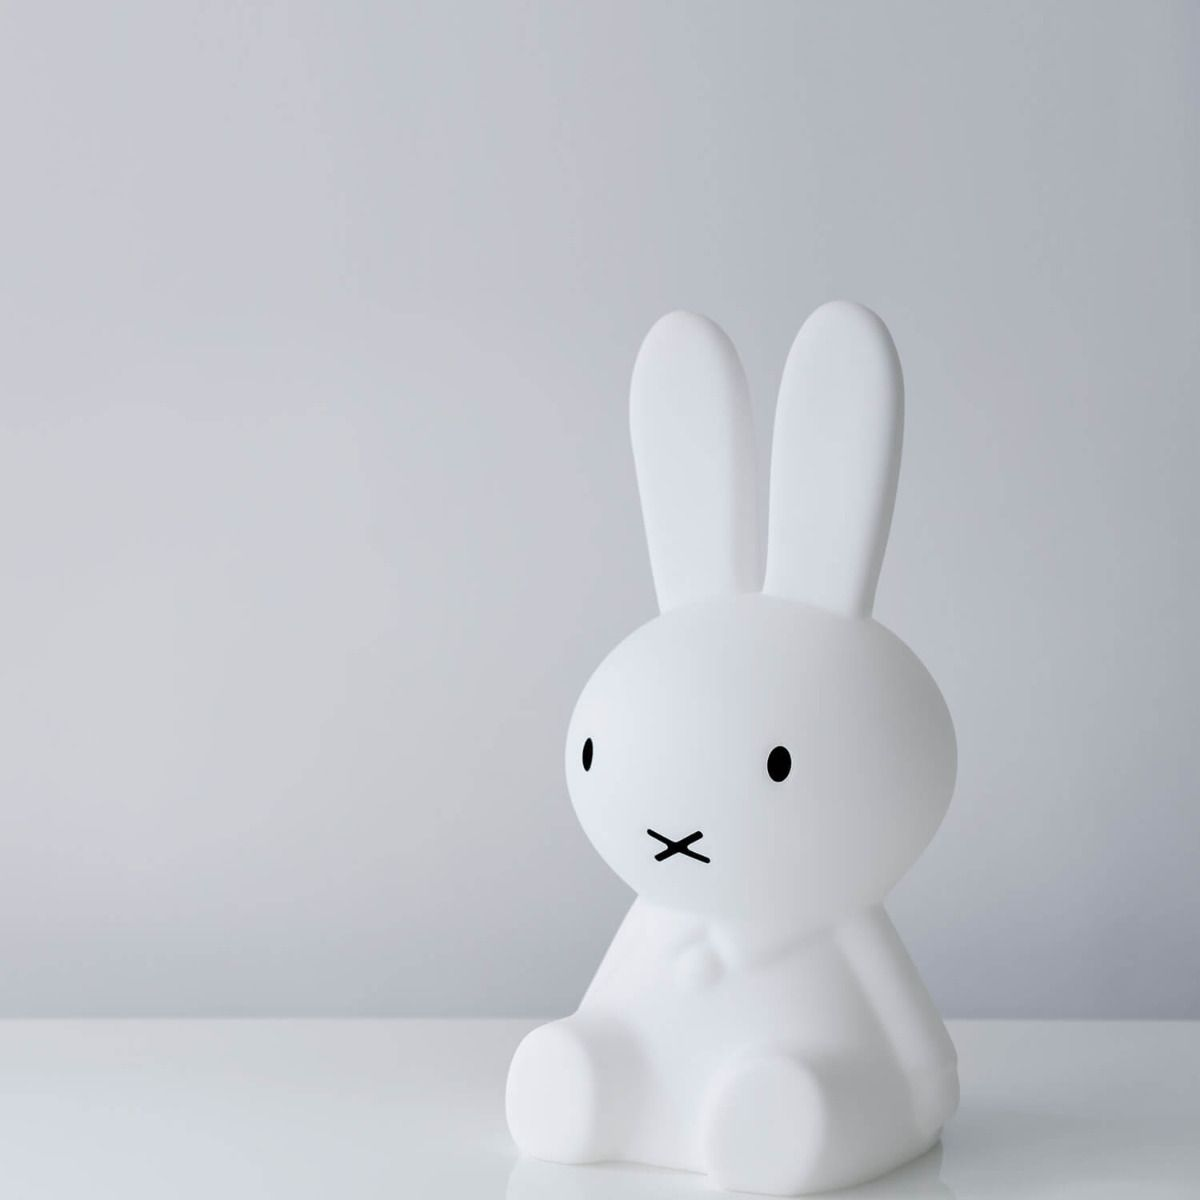 Kinderlampe Led Schmatzepuffer Kreative Ideen Mrmaria Miffy Original Led